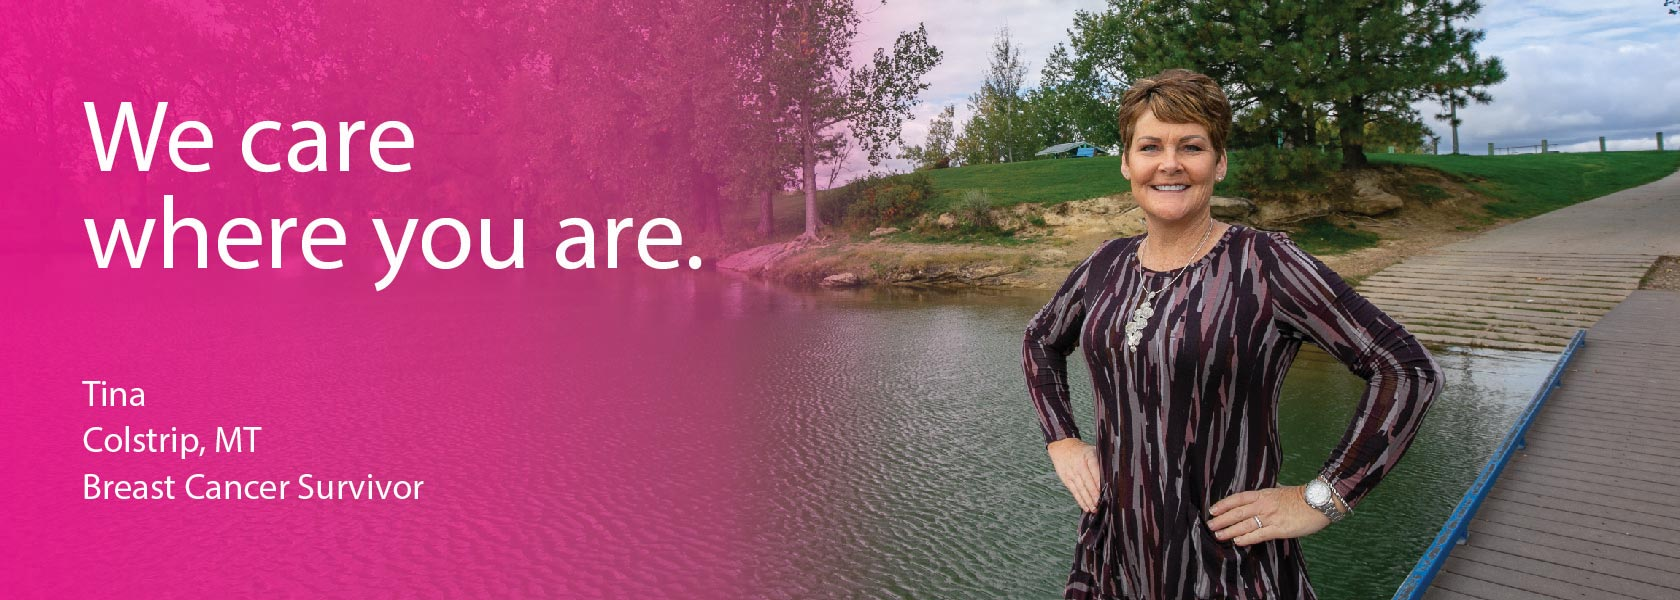 Breast Cancer Survivors - Tina